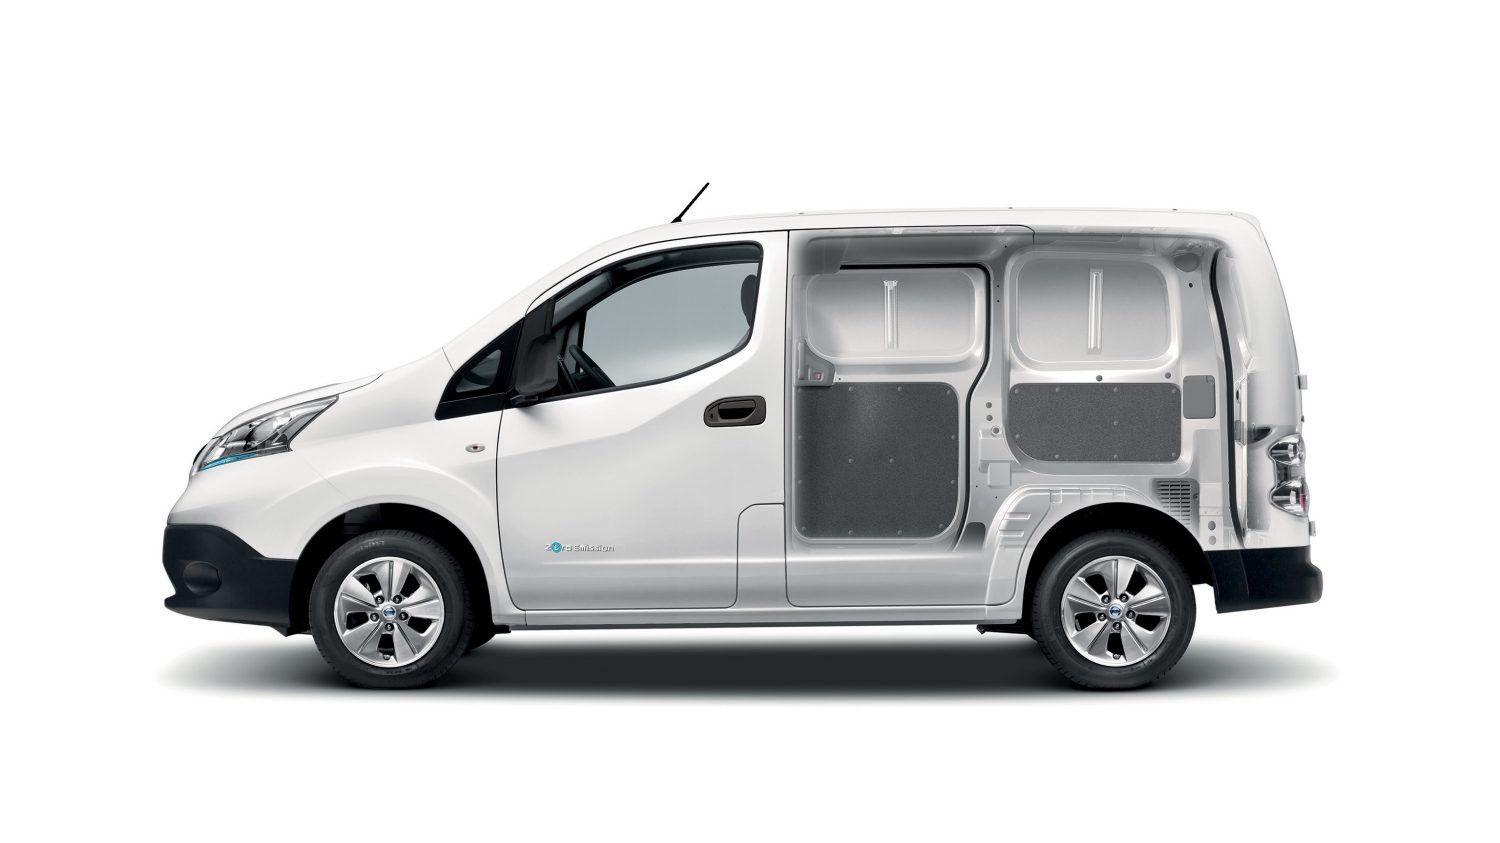 Ranking The Range Of Electric Vans